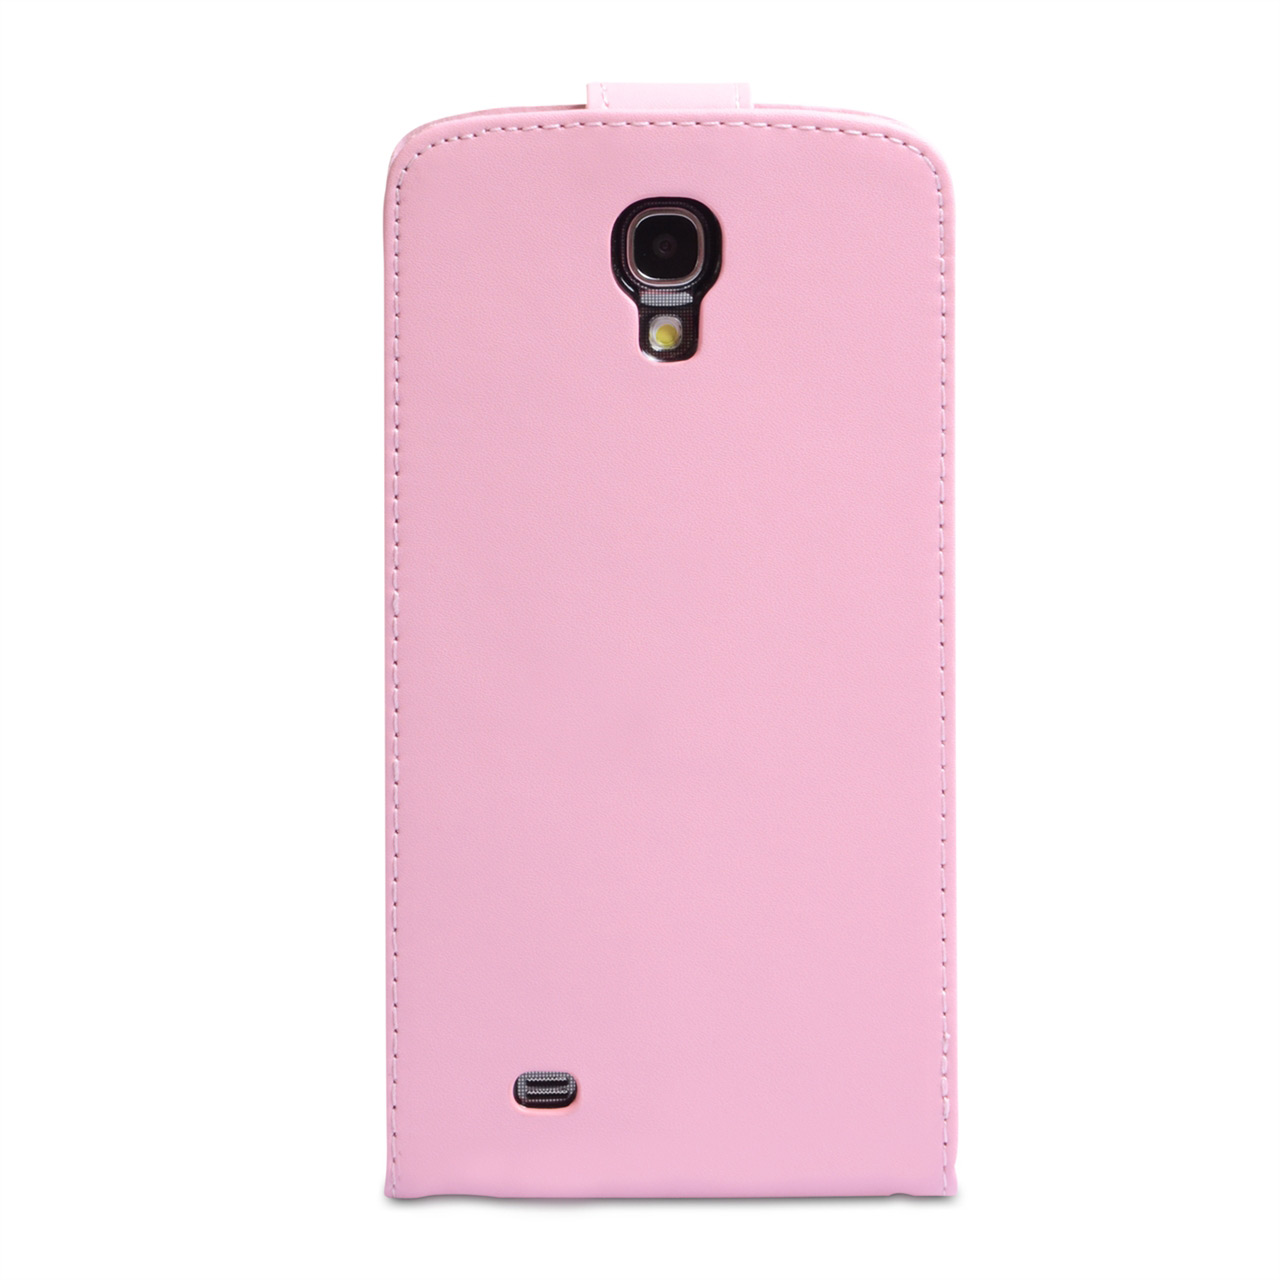 YouSave Samsung Galaxy Mega 6.3 Leather Effect Flip Case - Baby Pink